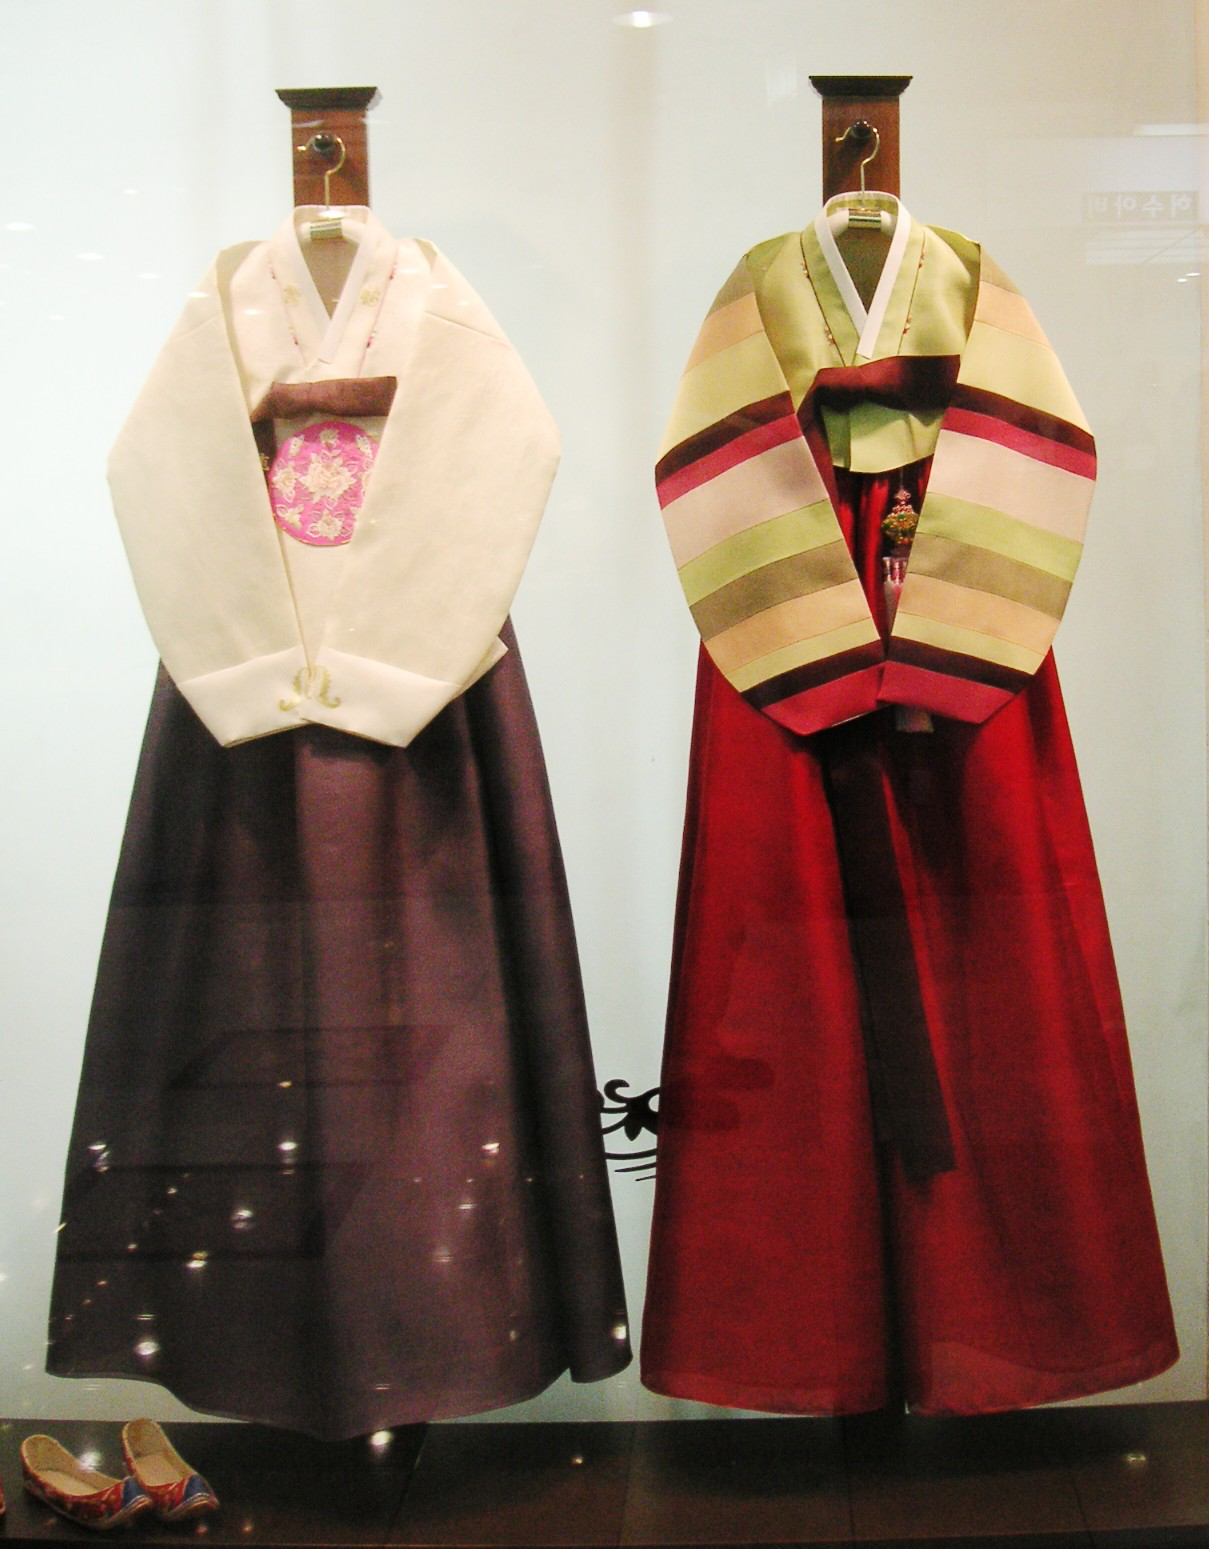 http://upload.wikimedia.org/wikipedia/commons/3/3d/Hanbok_oct2005_shopwindow.jpg